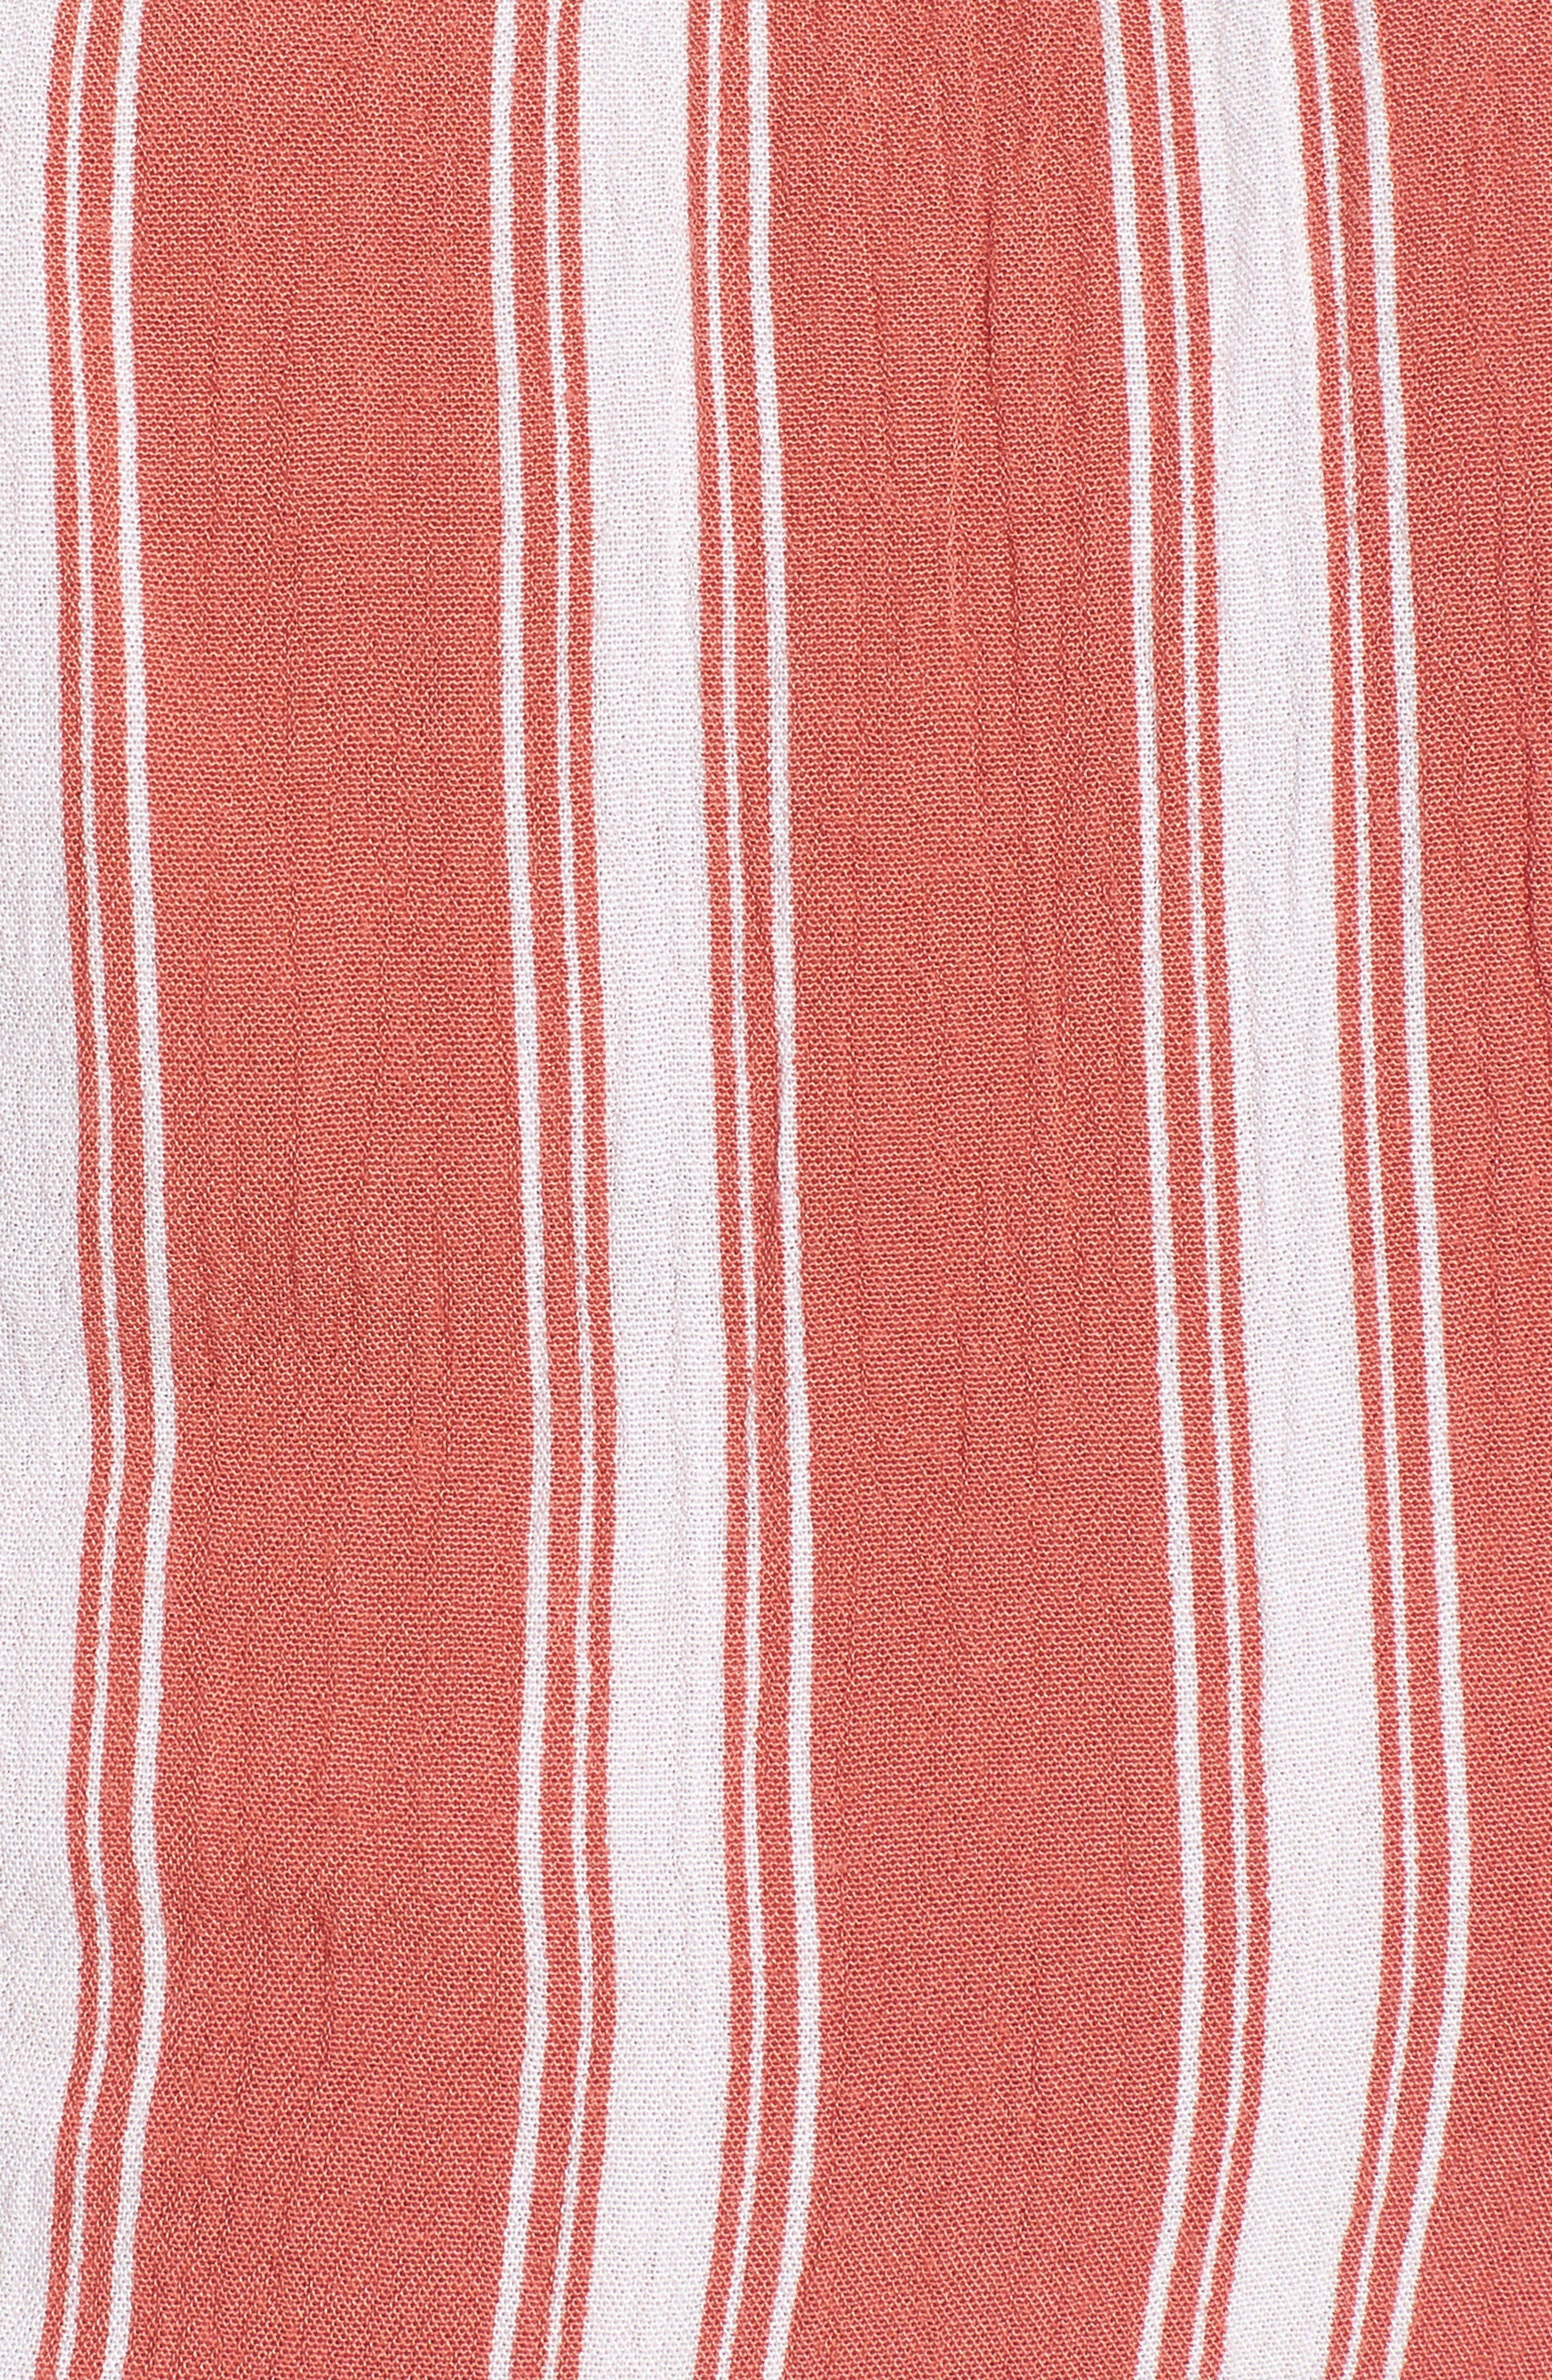 Stripe Smocked Crop Top,                             Alternate thumbnail 5, color,                             DUSTY CORAL/ IVORY